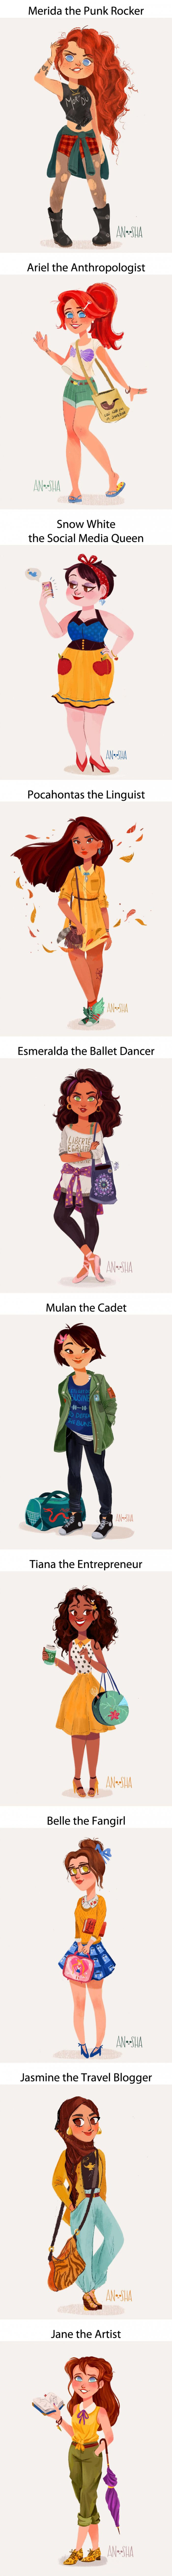 If Disney Princess Lived In The 21st Century As Modern Day Girls (by Anoosha Syed) #disneypixar